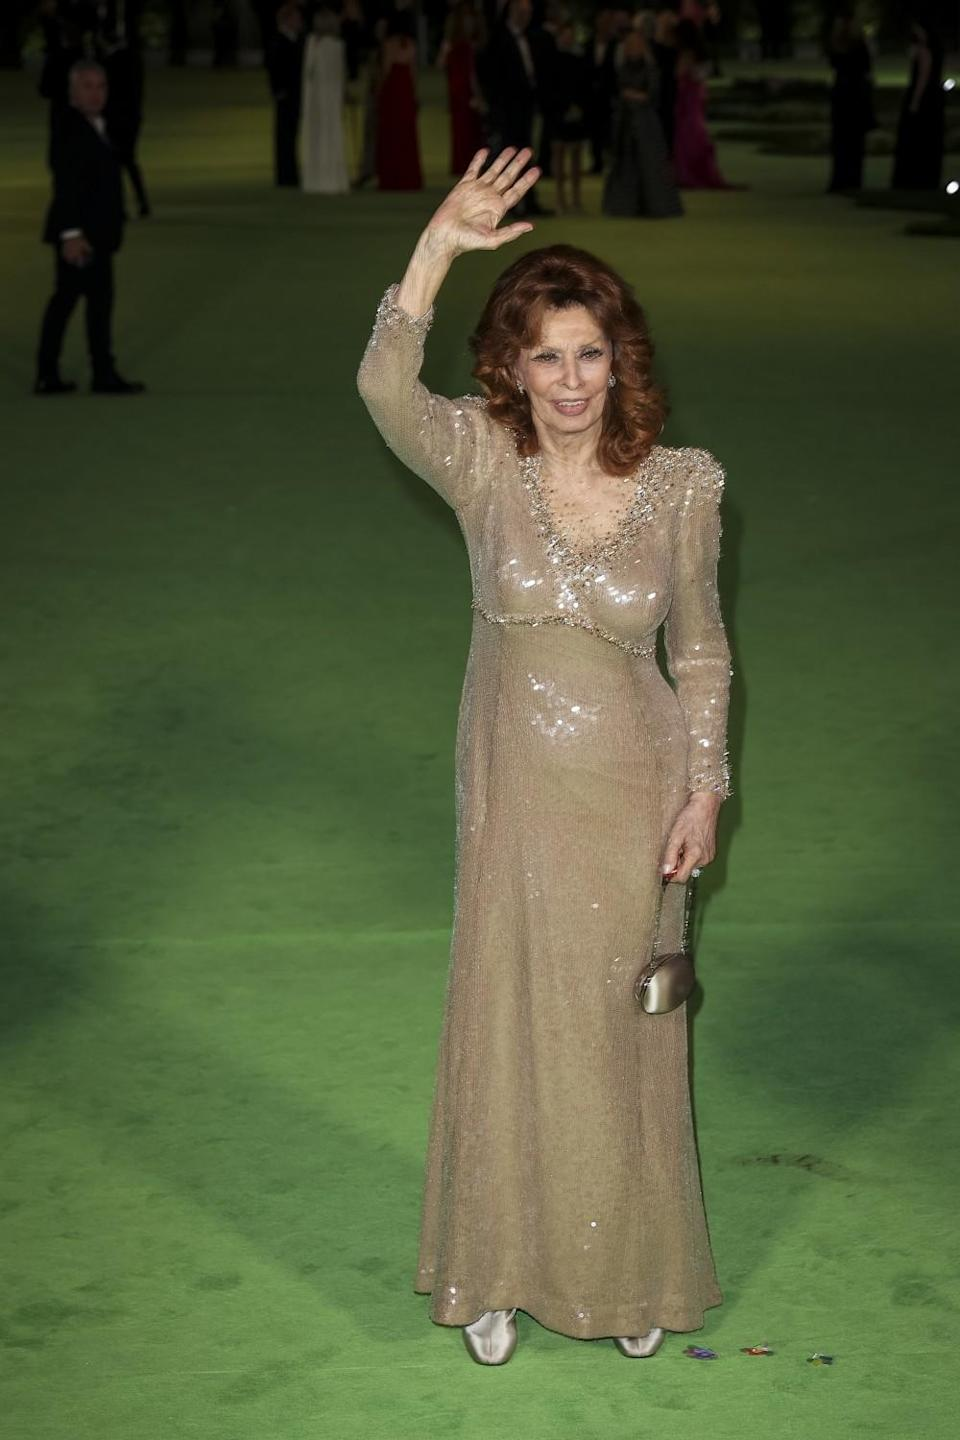 A woman in a gold dress waving on a green carpet